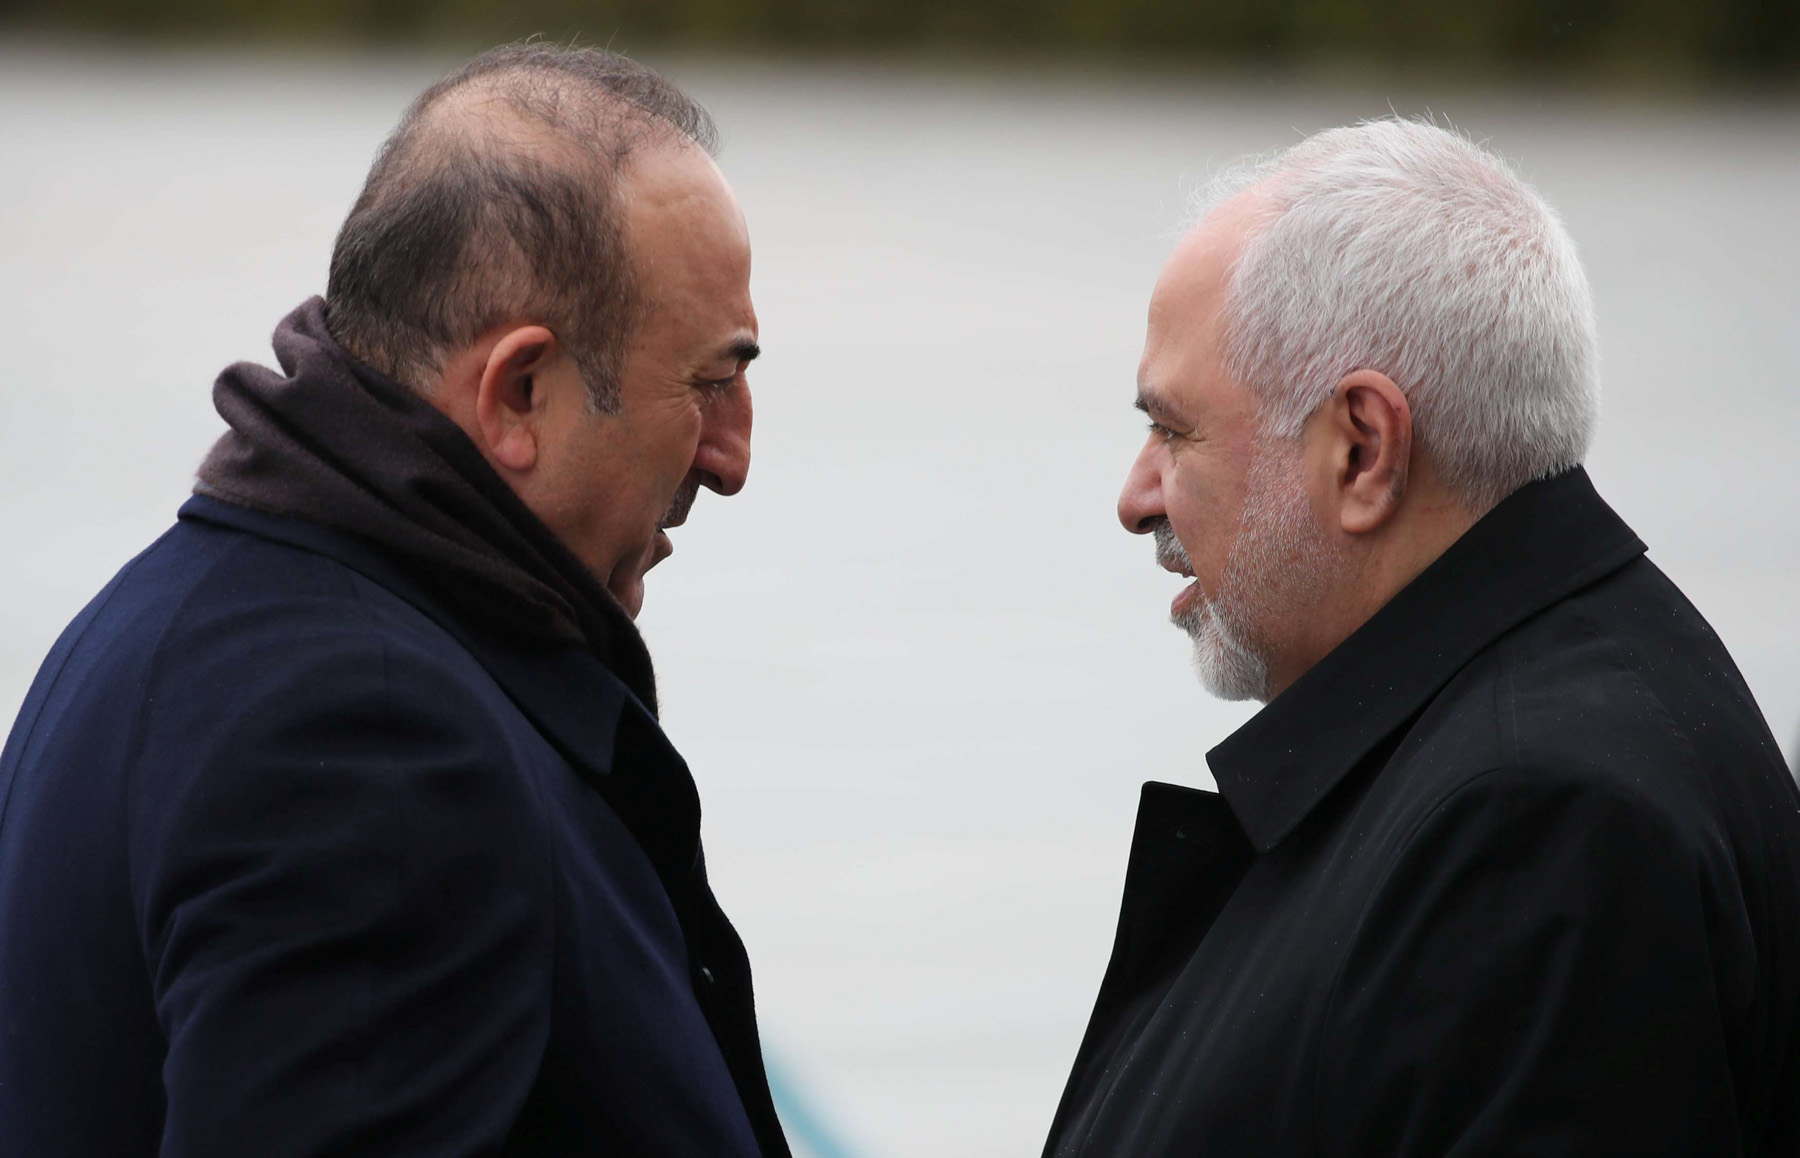 In the same trench. Turkish Foreign Minister Mevlut Cavusoglu (L) and his Iranian counterpart Mohammad Javad Zarif, chat in the presidential palace in Ankara, last December. (Reuters)